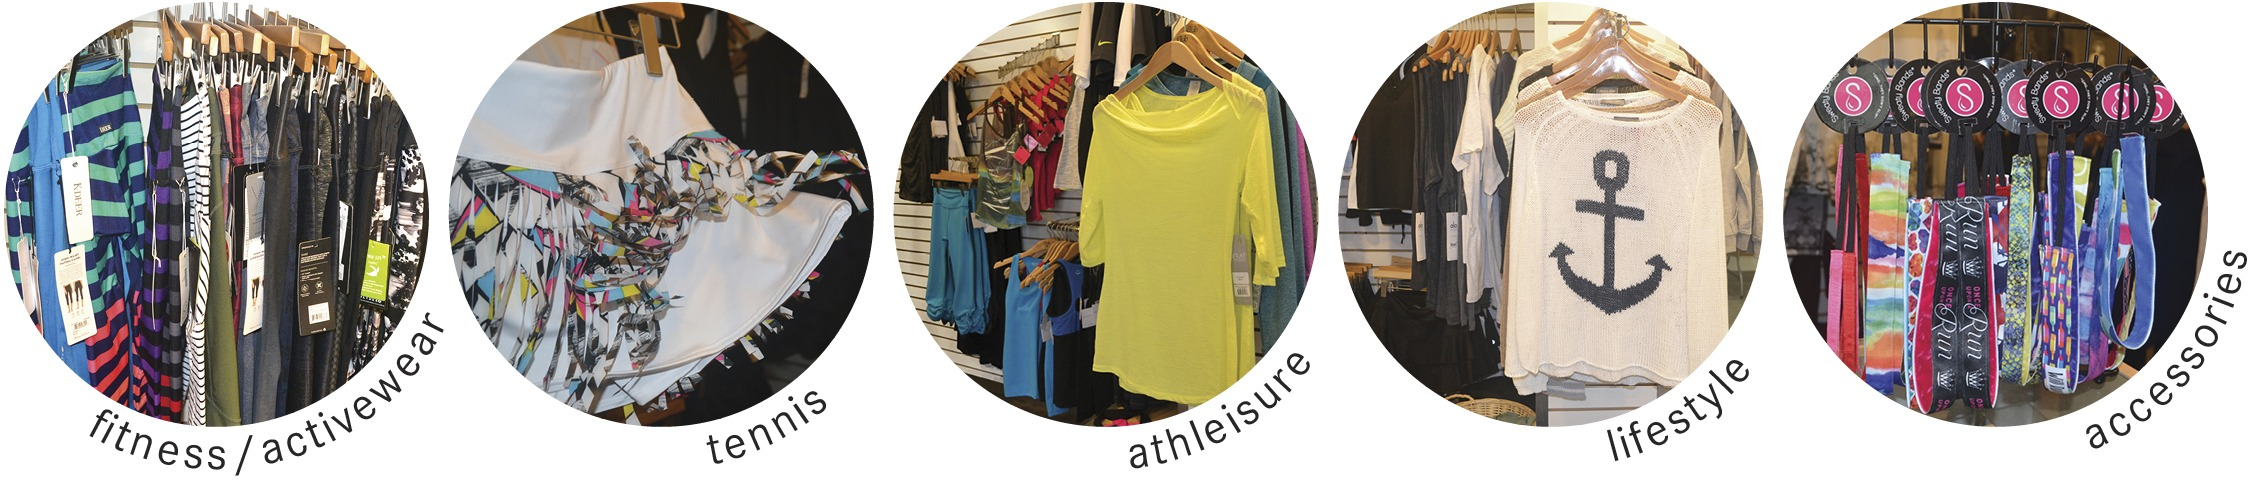 Athleisure Fitness Tennis Yoga Activewear Accessories in Westchester, NY | The Shop | Club Fit Briarcliff